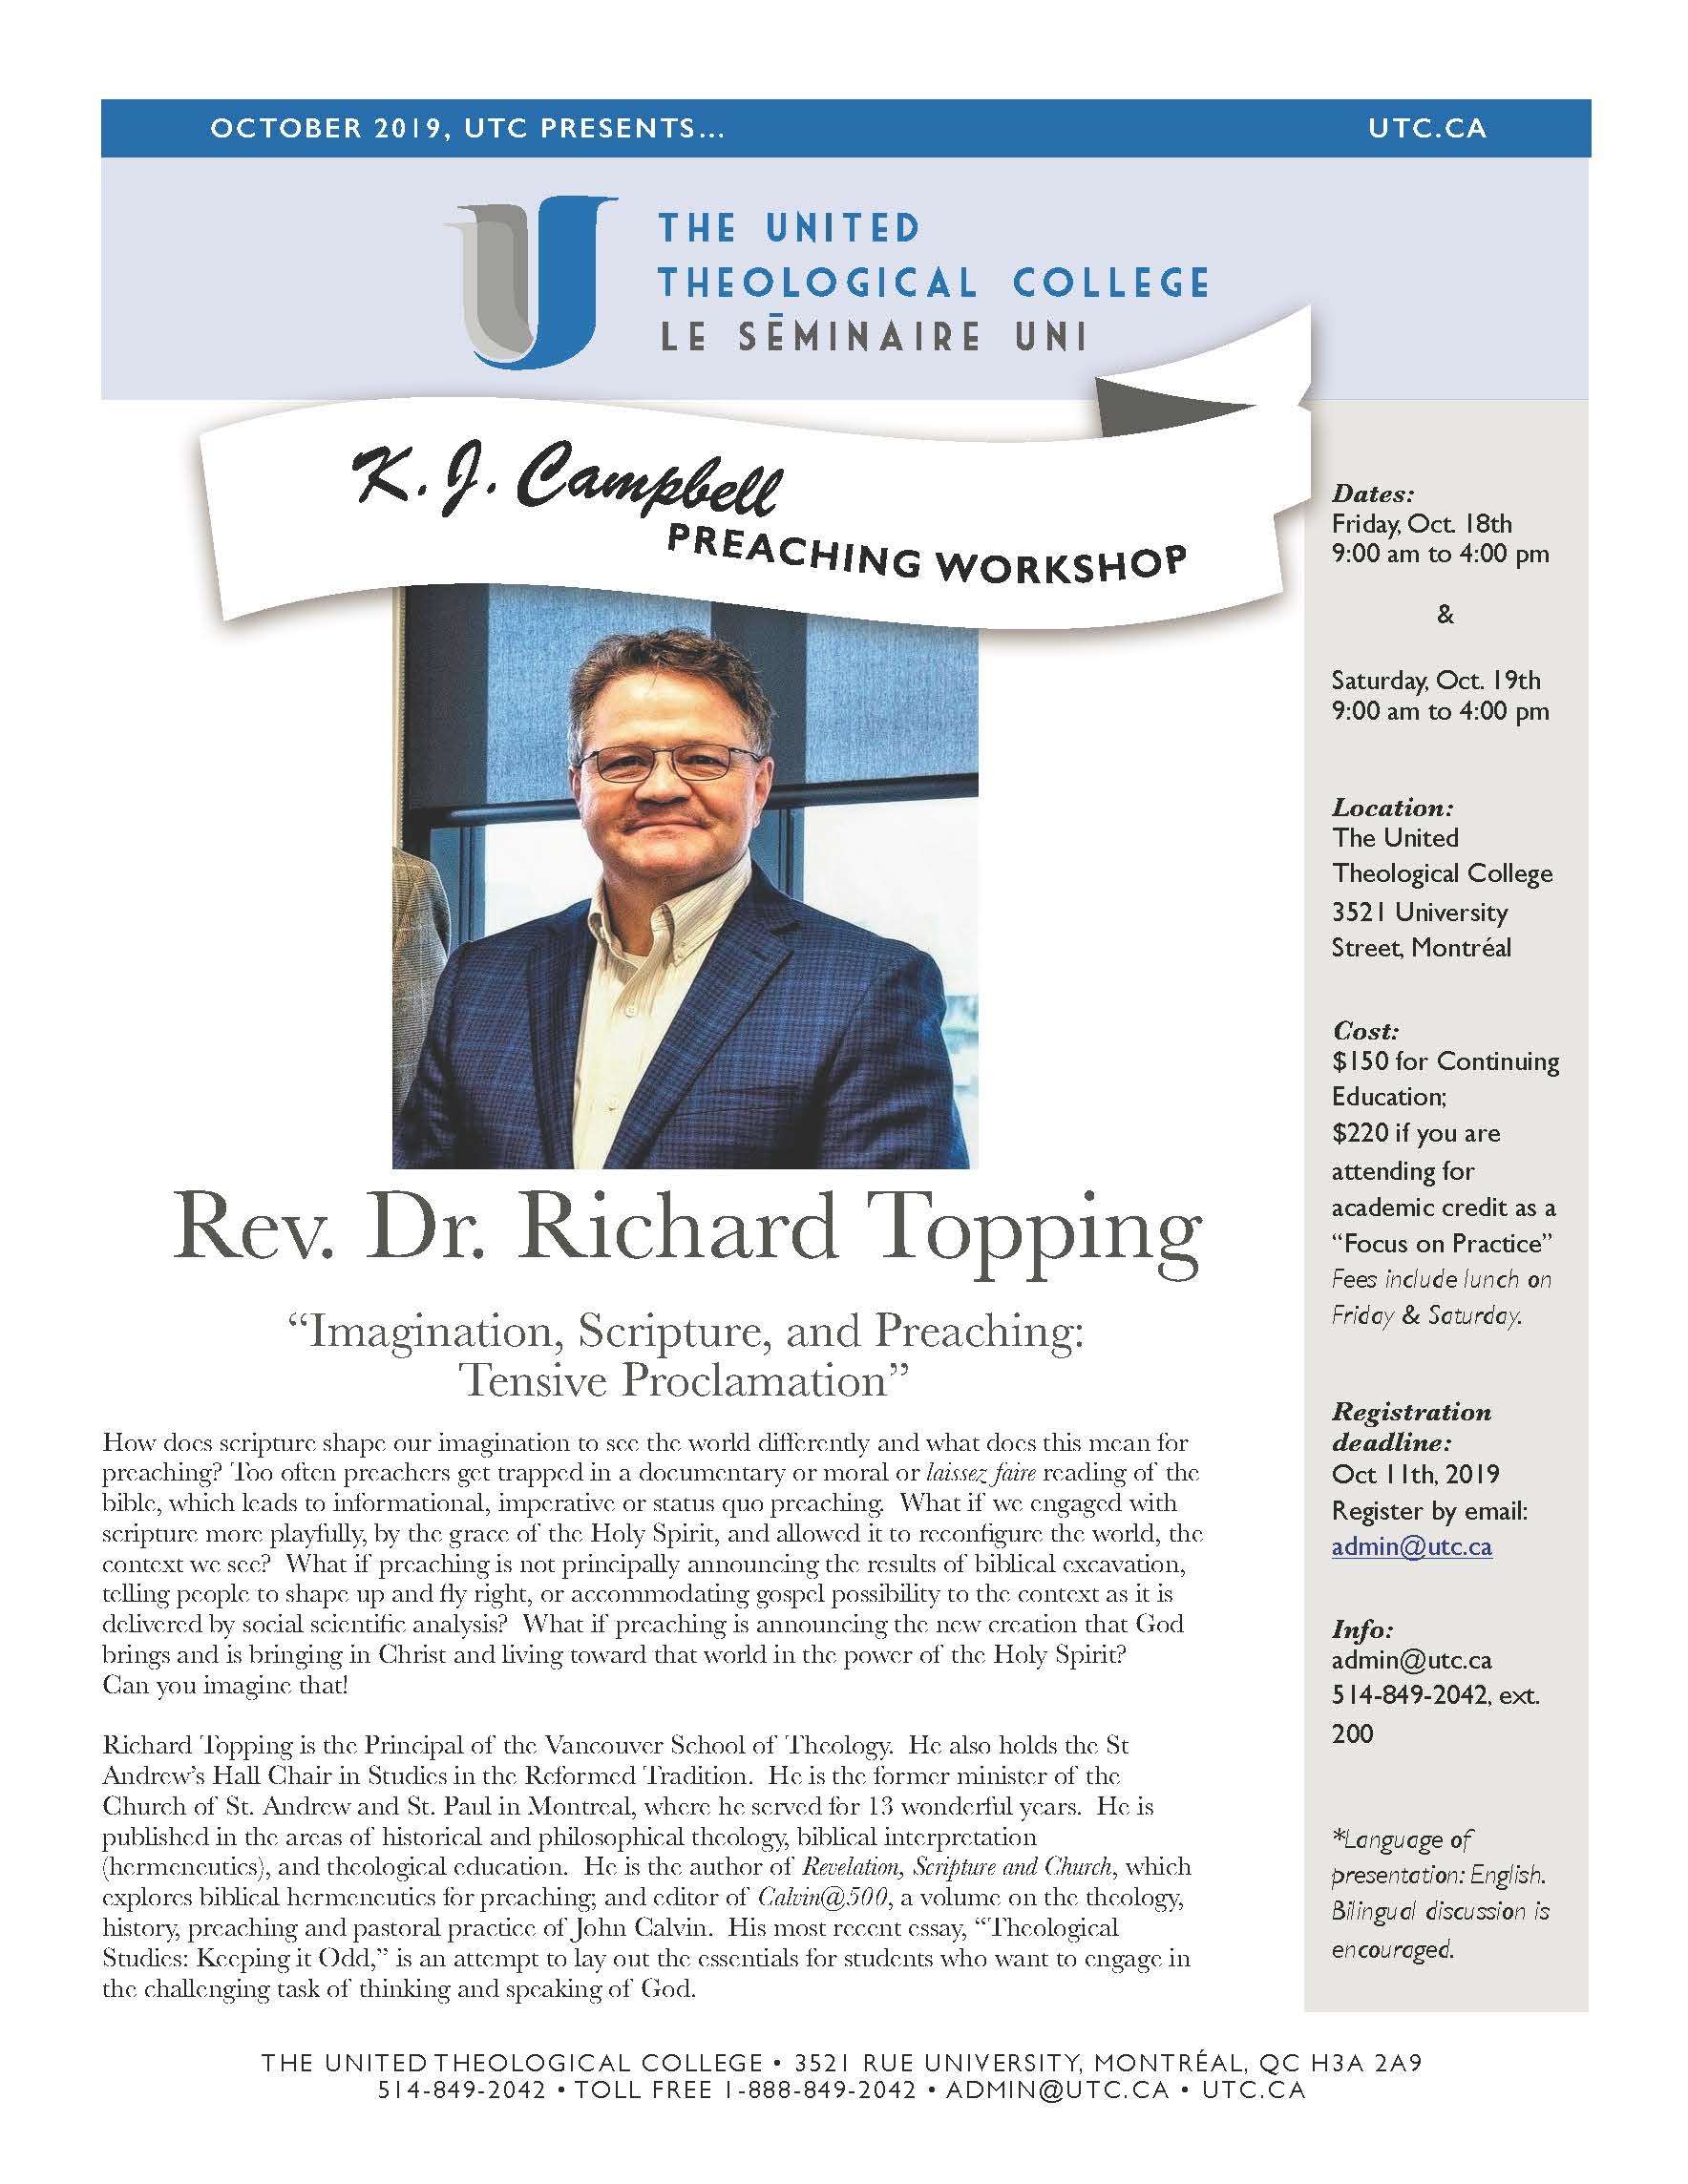 Oct 2019: K.J. Campbell Preaching Workshop